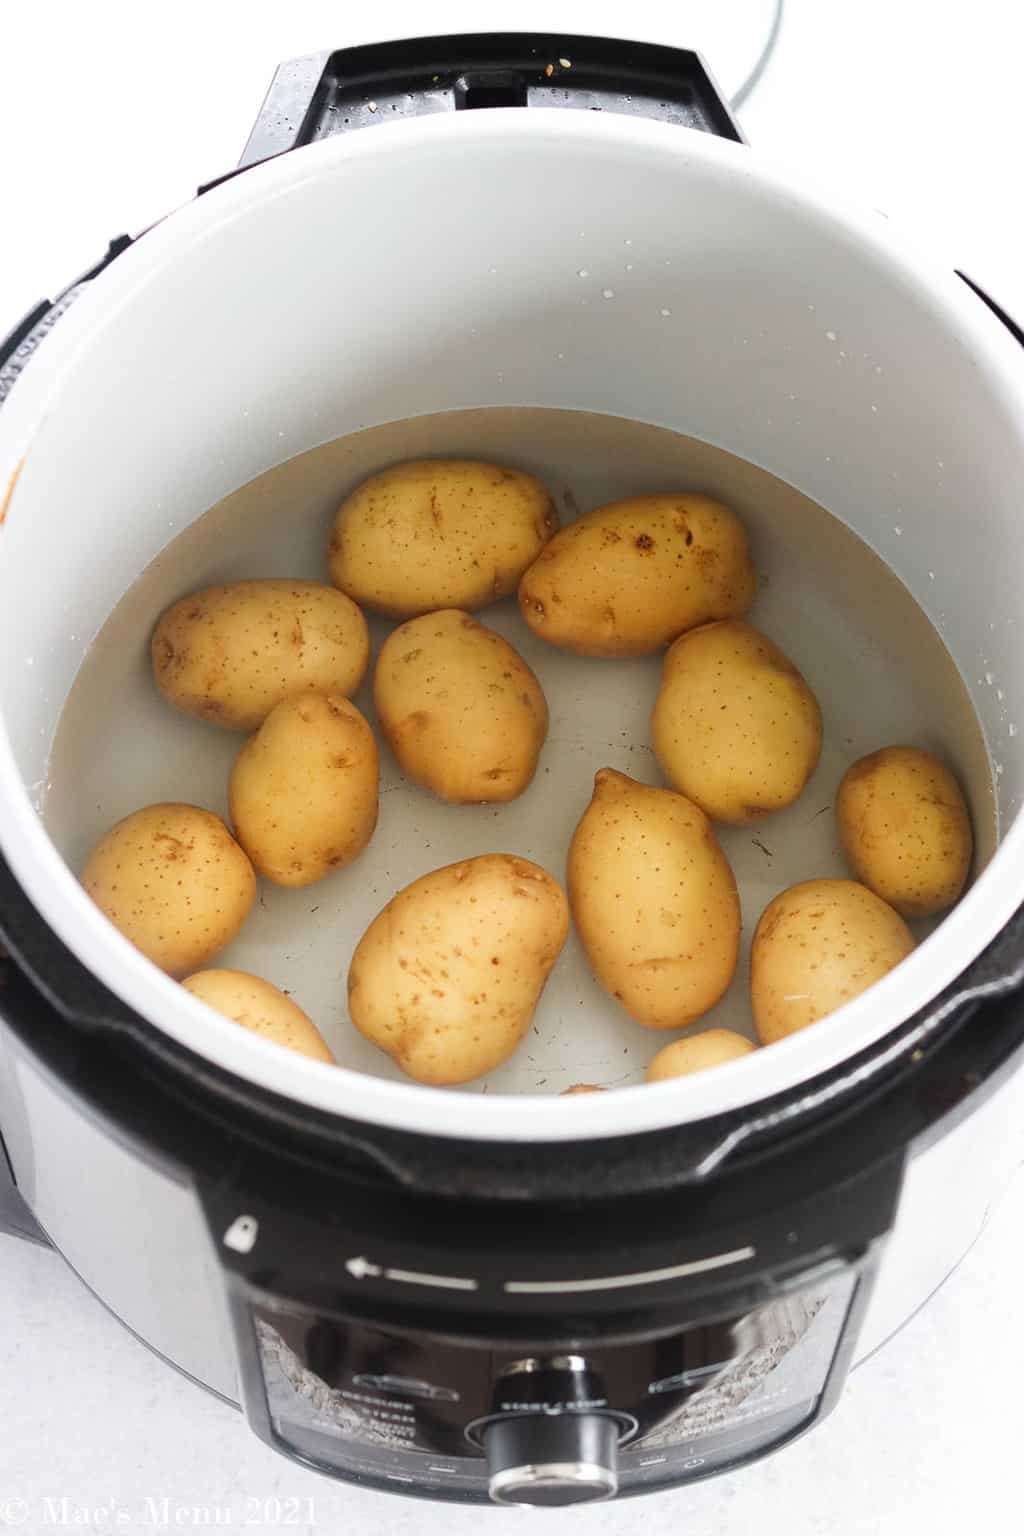 A pressure cooker full of baby golden potatoes